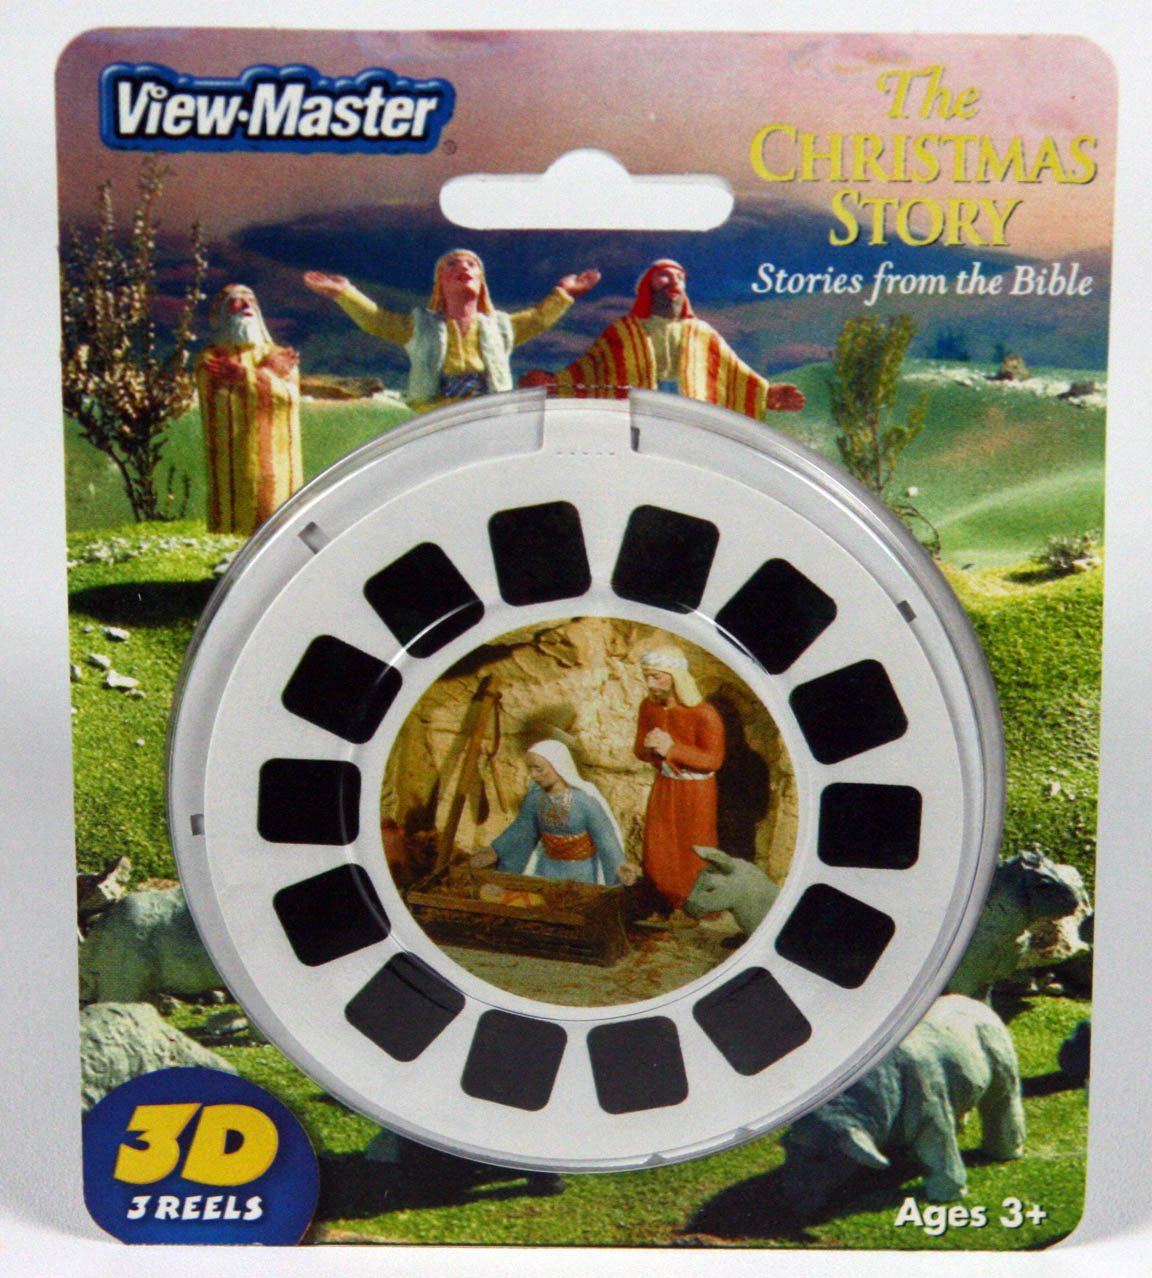 Viewmaster Reel set of 3 Christmas Story from the Bible by View Master